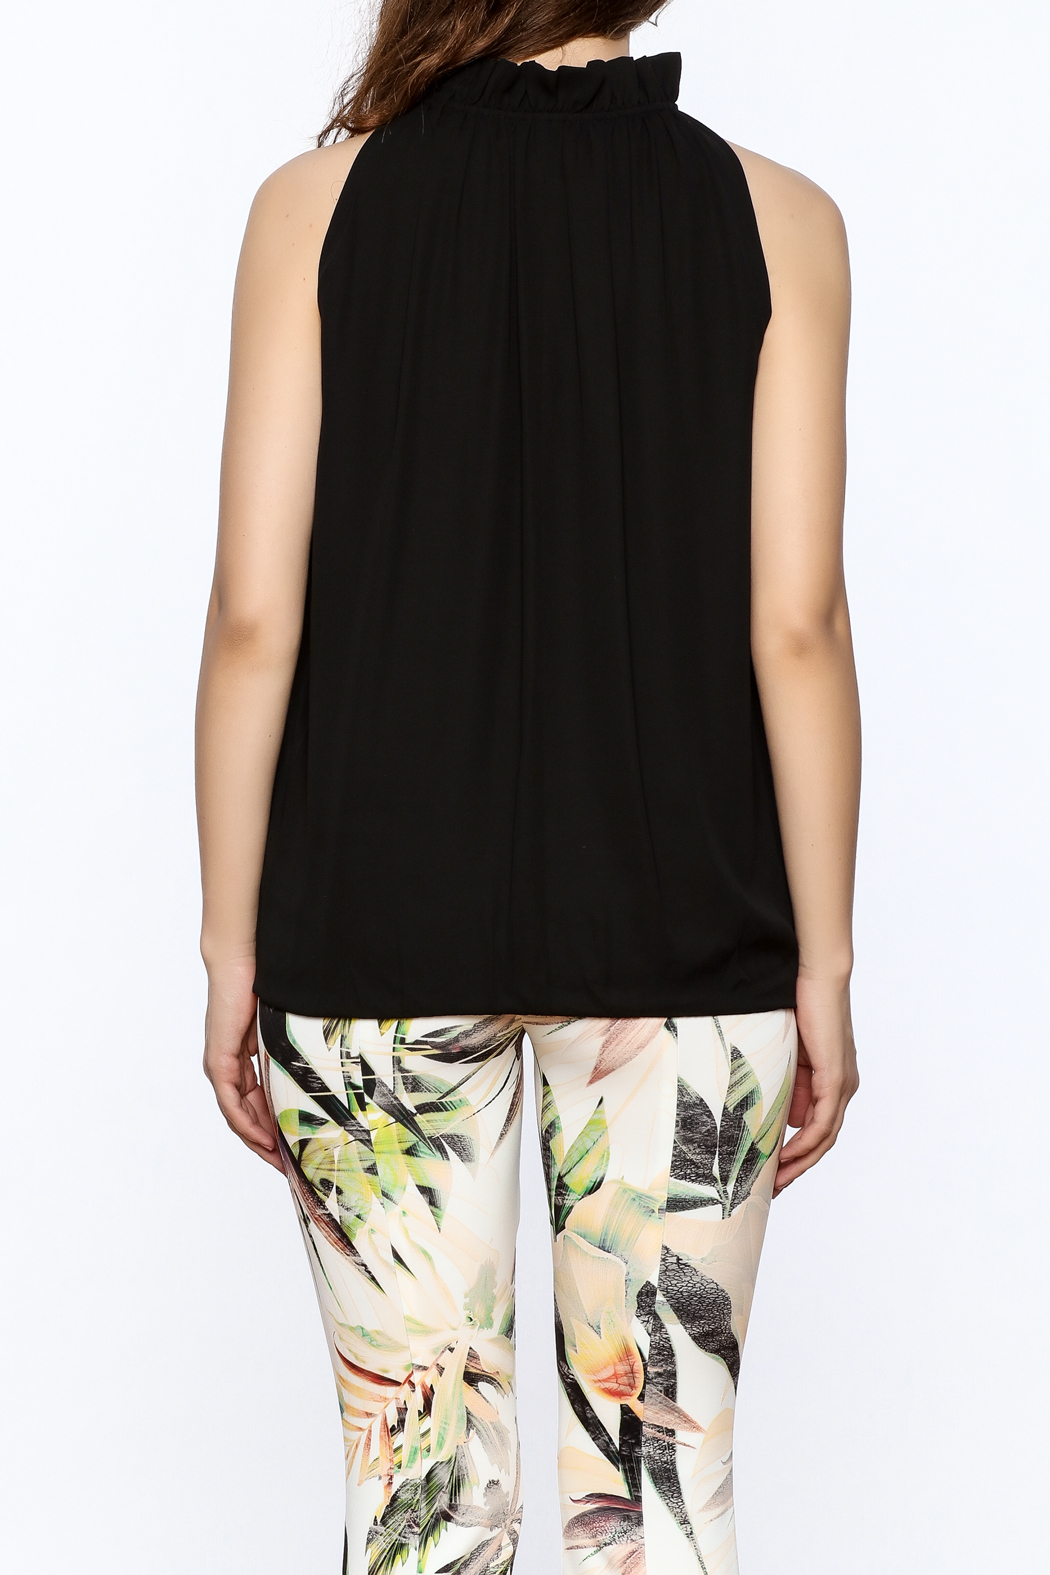 Dora Landa Black Sleeveless Flowy Top - Back Cropped Image